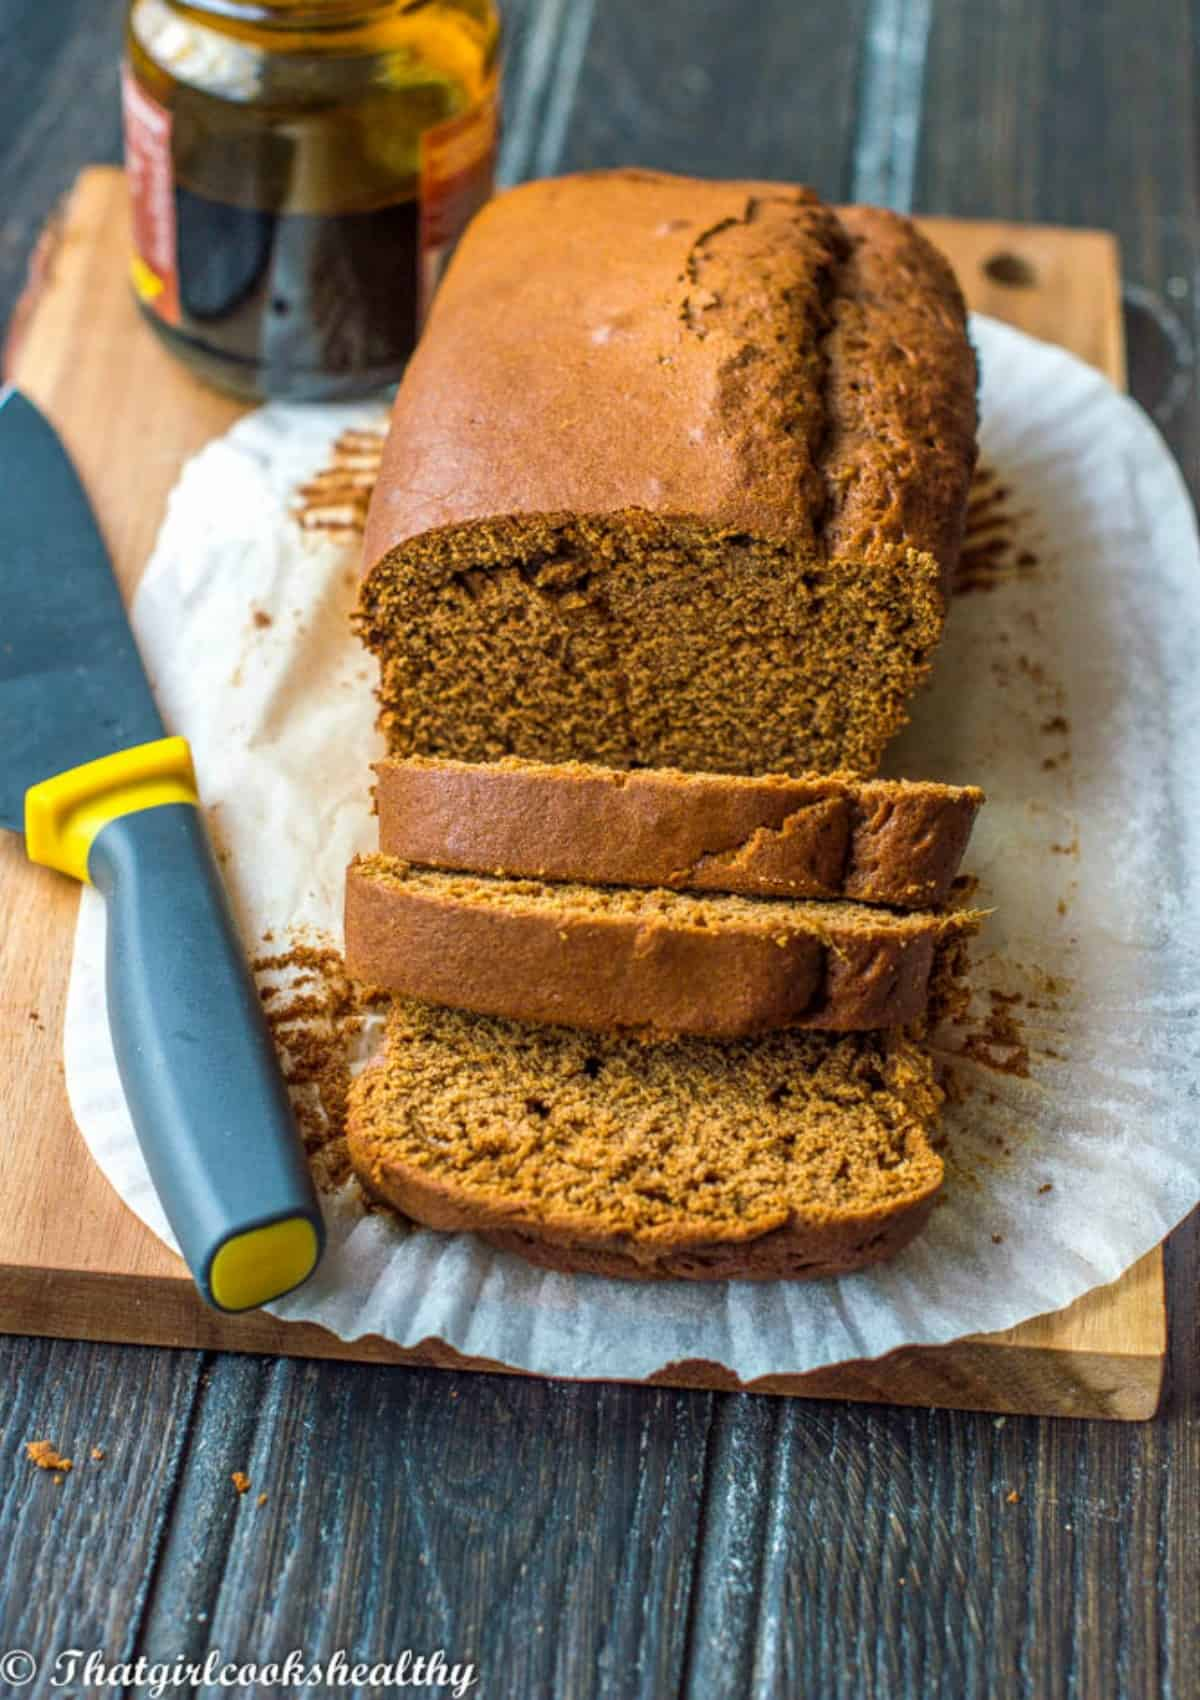 Cake on a brown broad with knife